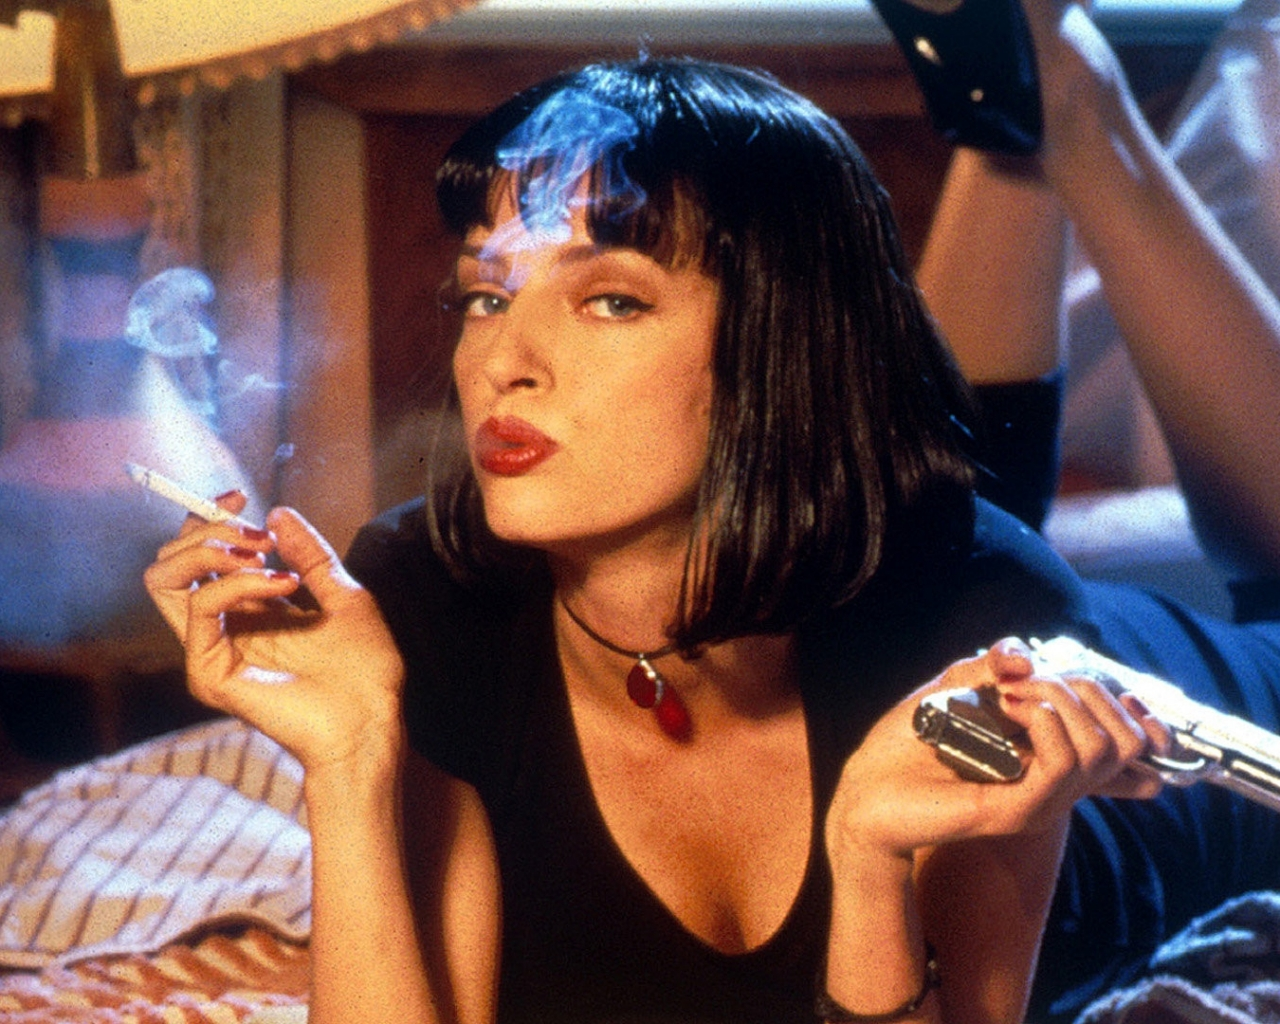 http://2.bp.blogspot.com/-7o2-ey9EWTw/UP2f4LFyO-I/AAAAAAAABSI/v7UEftU-kZM/s1600/pulp_fiction_girl_mia_wallace_uma_thurman_pistol_smoke_cigarette_3533_1280x1024+(1).jpg